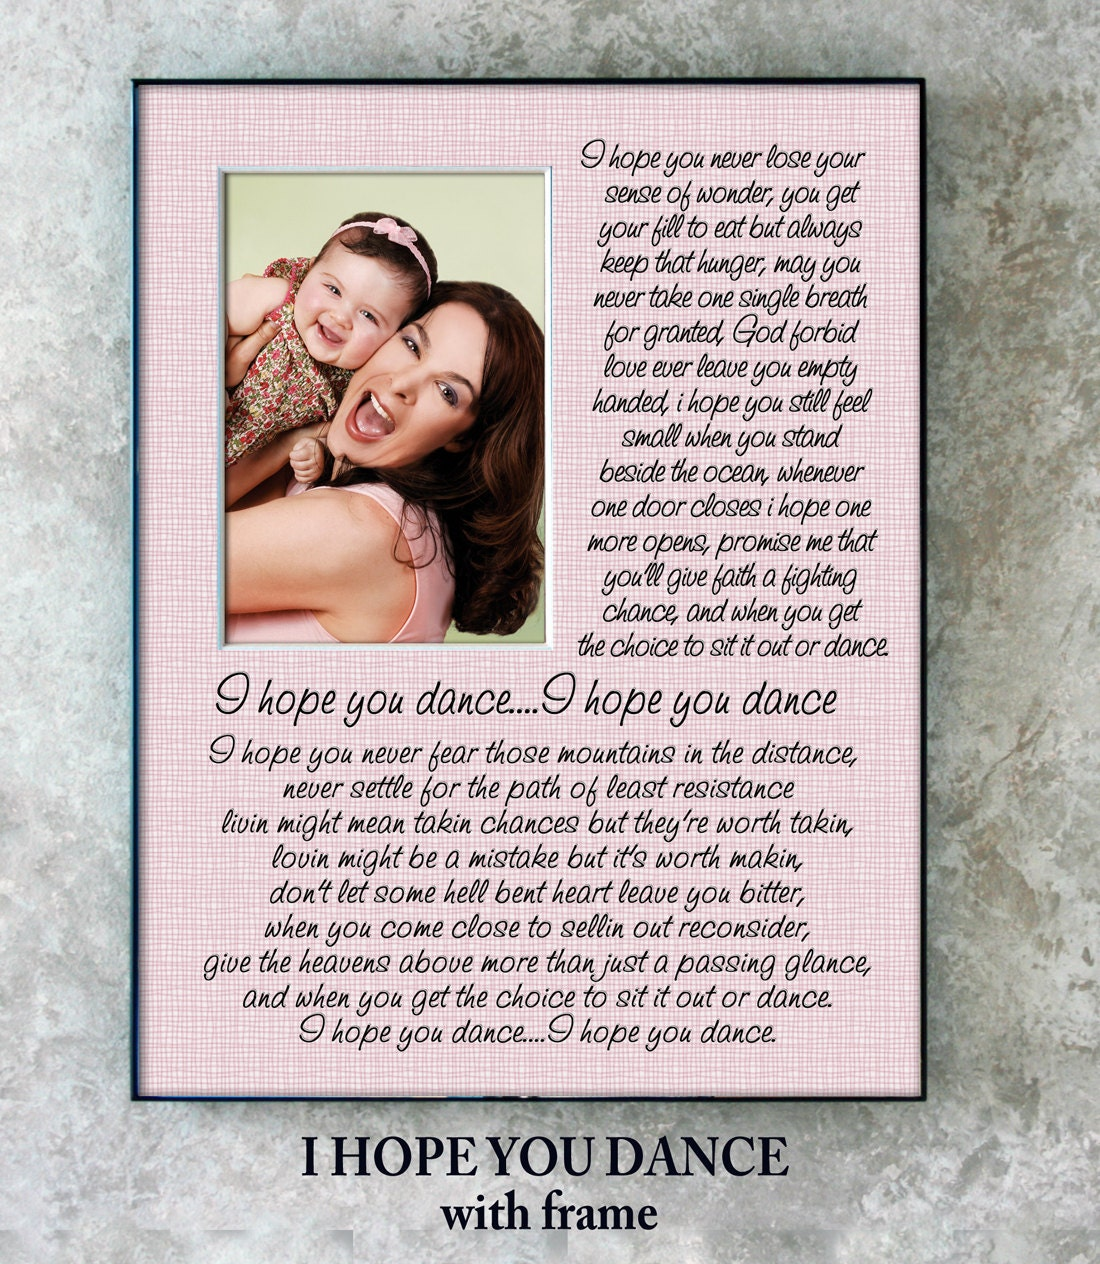 I Hope You Dance Song Lyrics 11x14 Photo Mat By Fancythisphoto